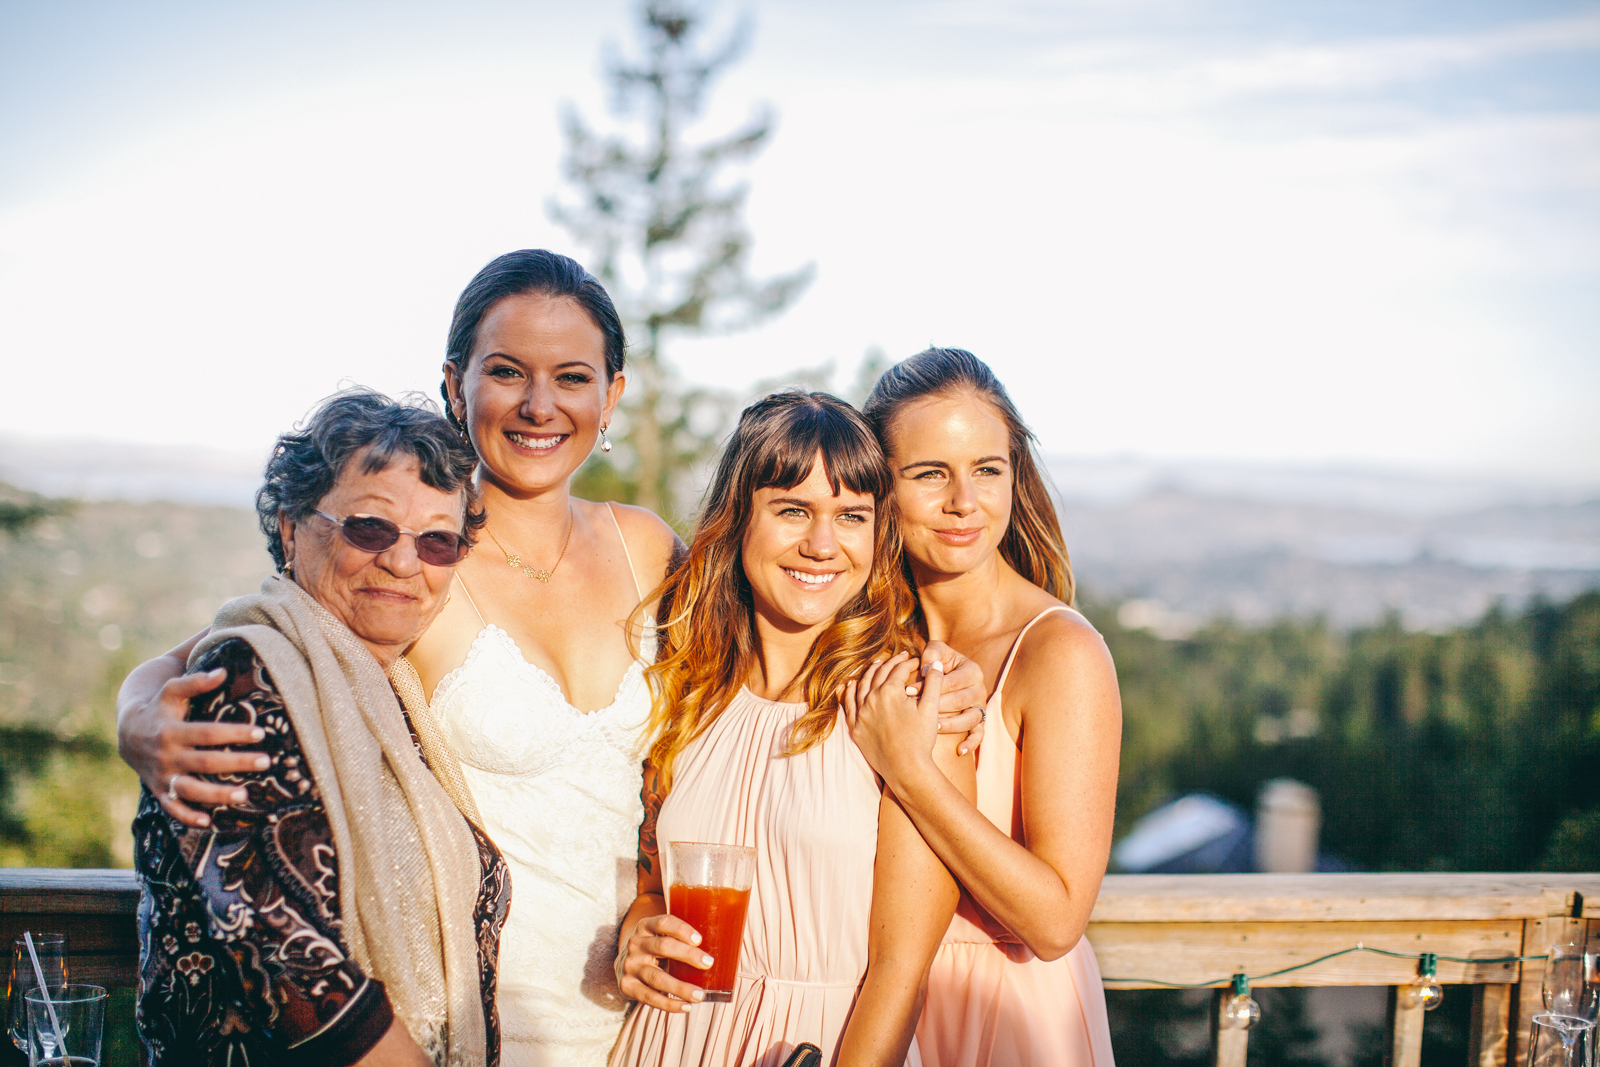 mt_tam_wedding_photography_marin_zac_katie_ebony_siovhan_bokeh_photography_56.jpg